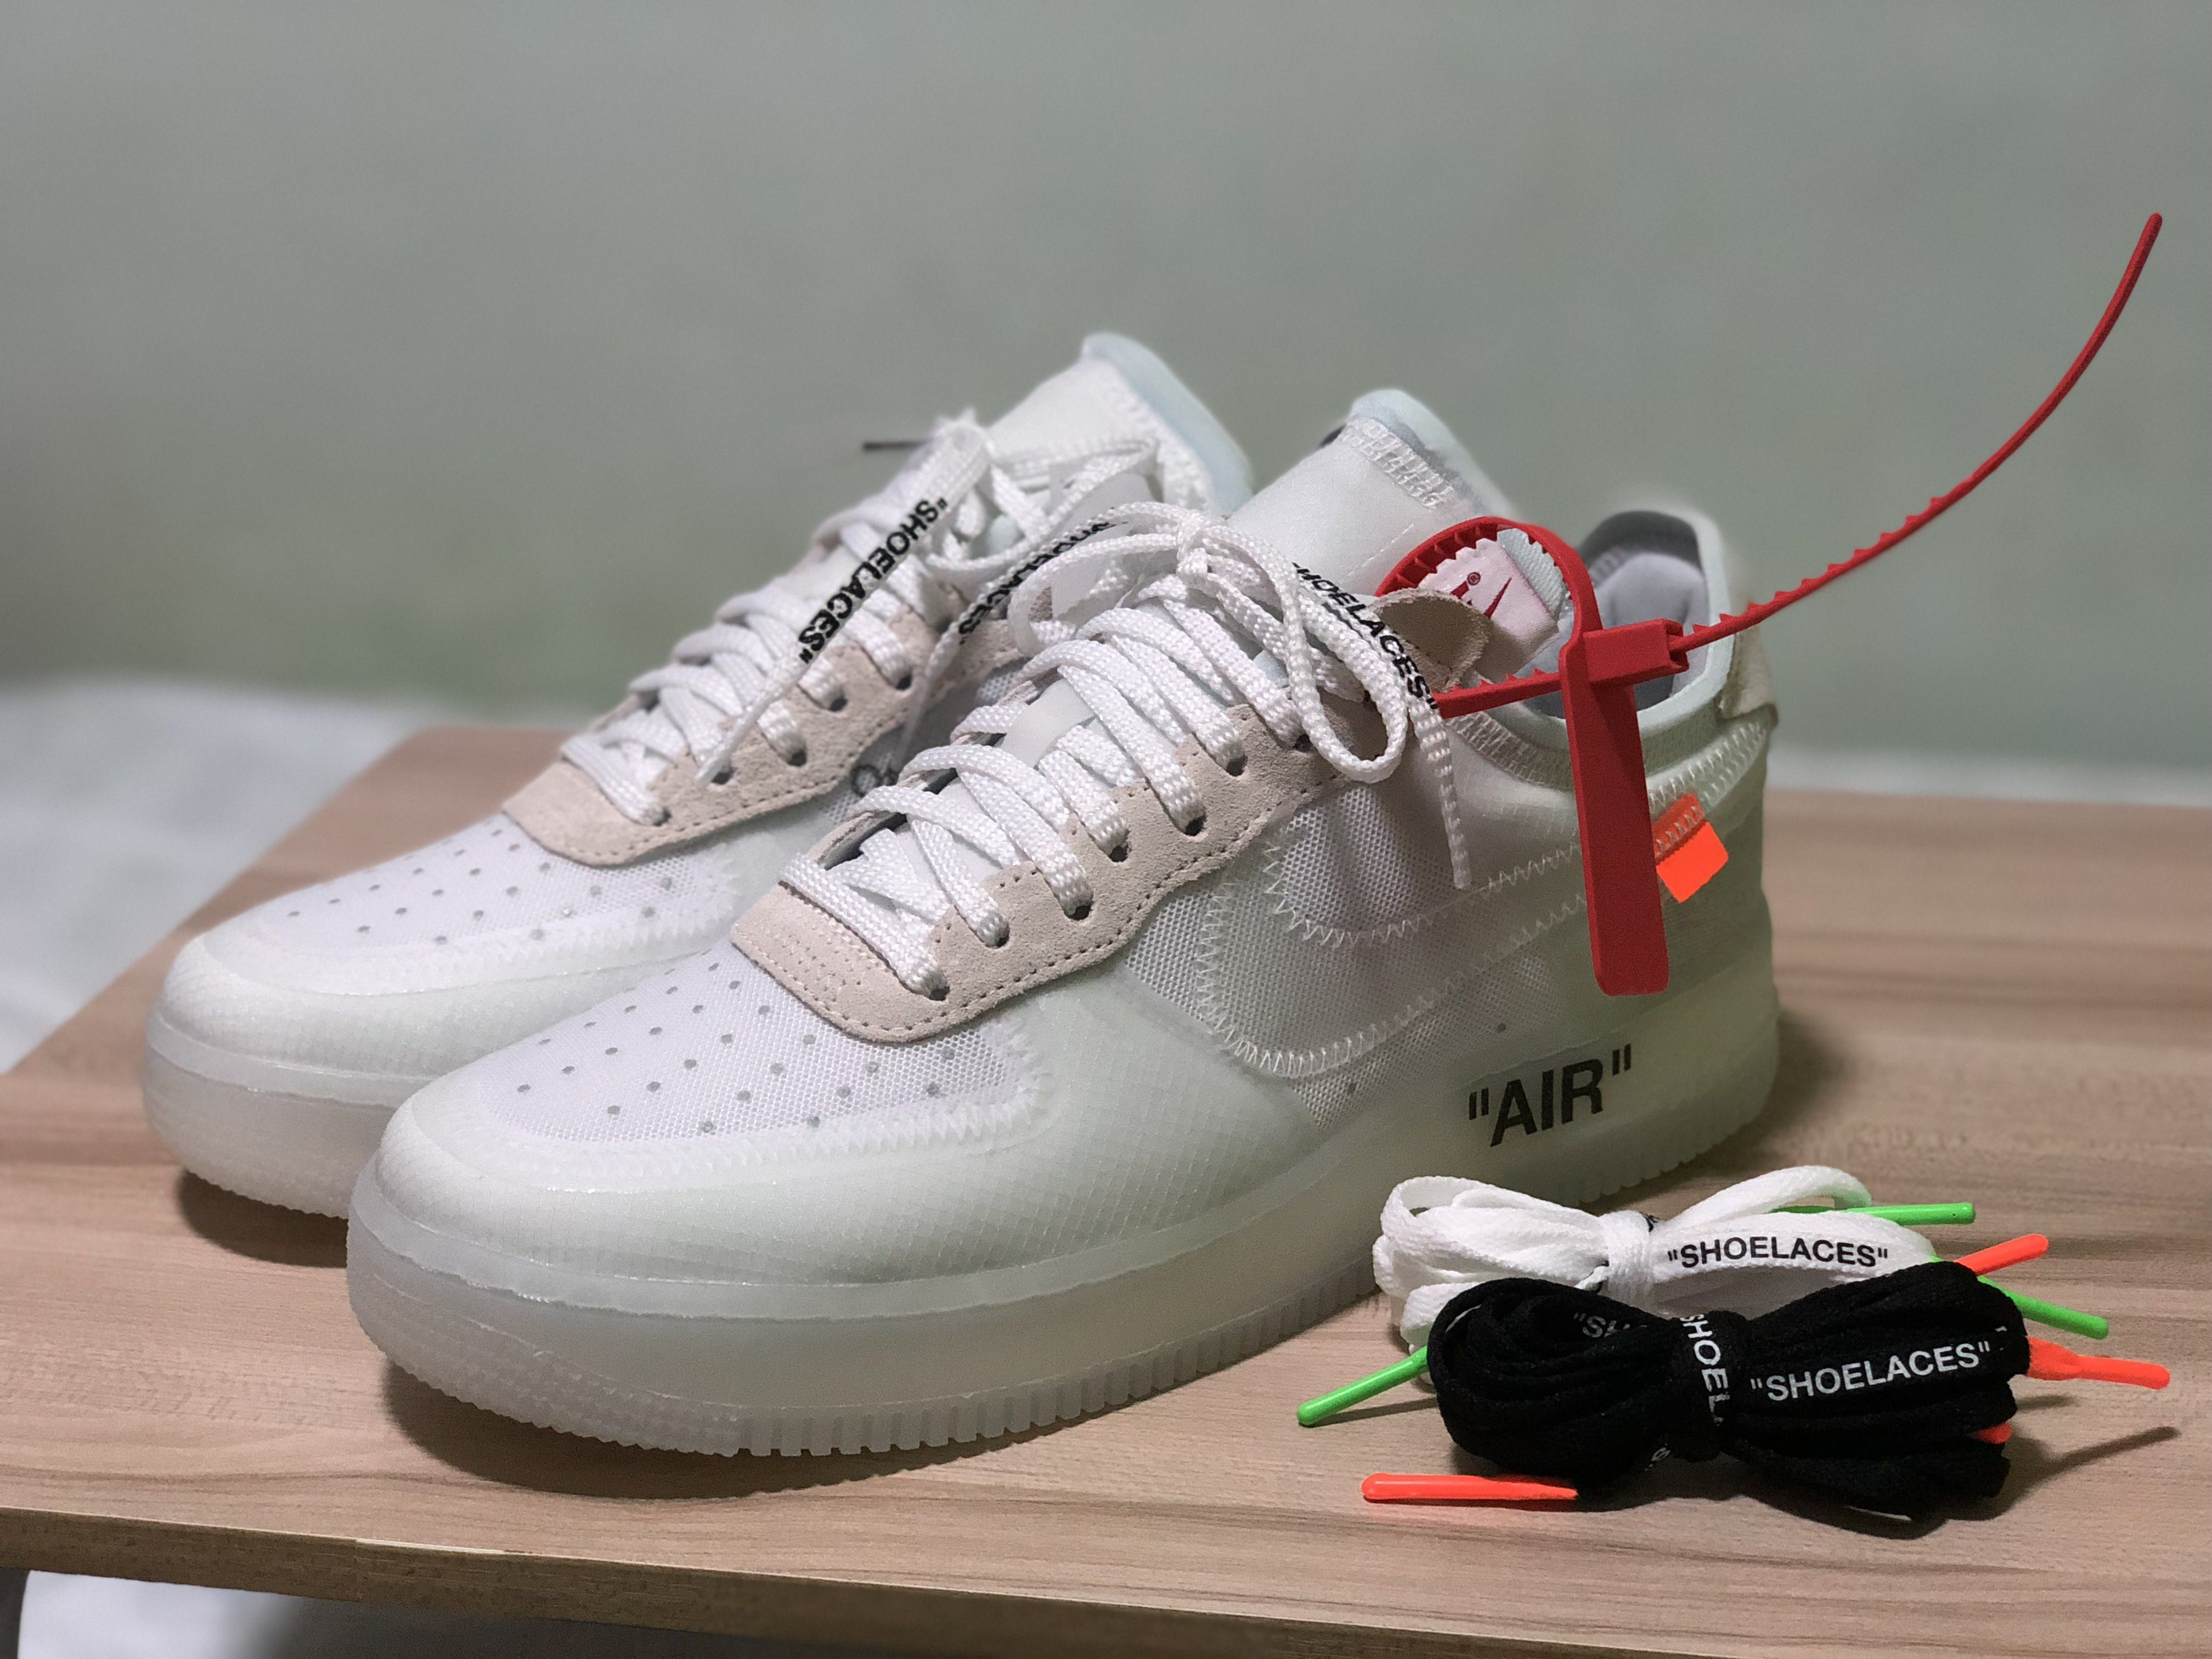 Thoughts And Styling Tips On Off White X Nike Air Force 1 Http Ift Tt 2b93wp4 Sneakers Men Fashion Off White Shoes Best Sneakers